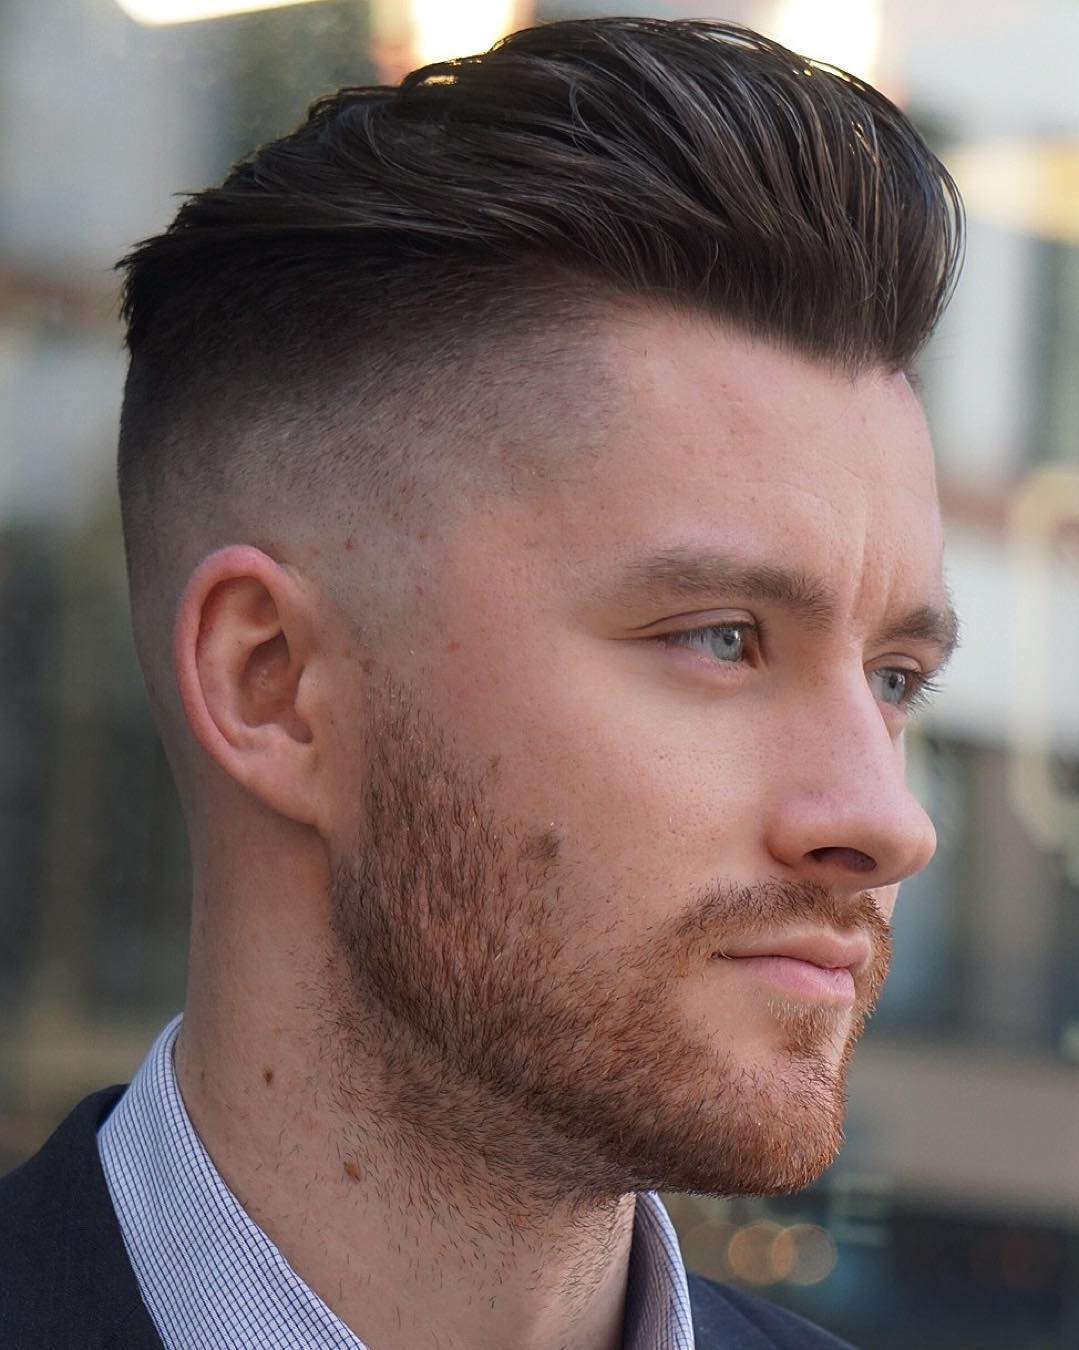 But while the big change may be scary, there are a lot of stunning s. 50 Stylish Undercut Hairstyle Variations To Copy In 2021 A Complete Guide